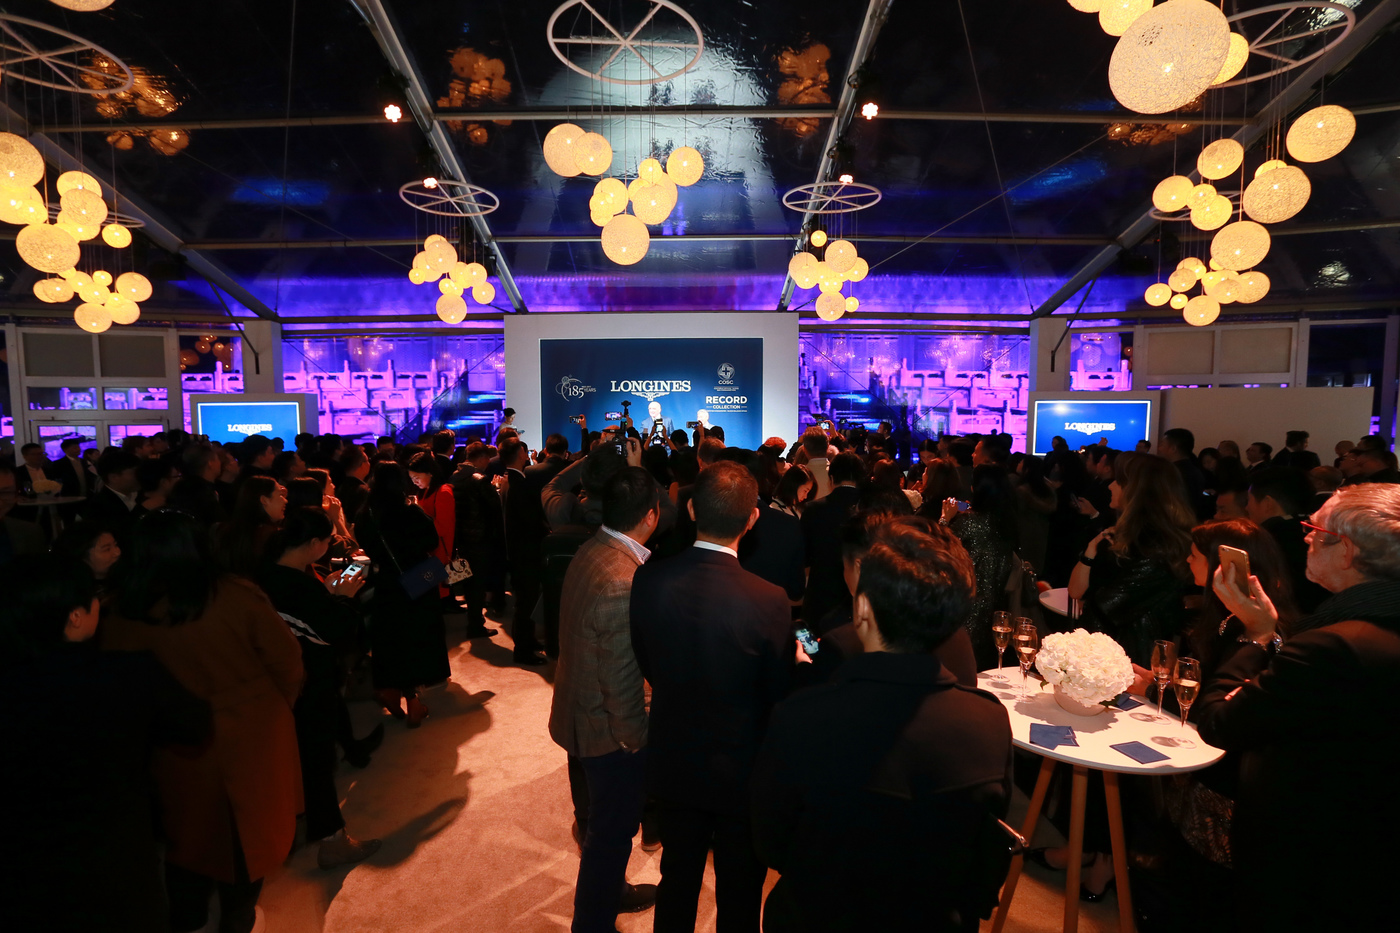 Longines Corporate Event: Longines launches new Record collection and celebrates its 185th Anniversary in Beijing 2